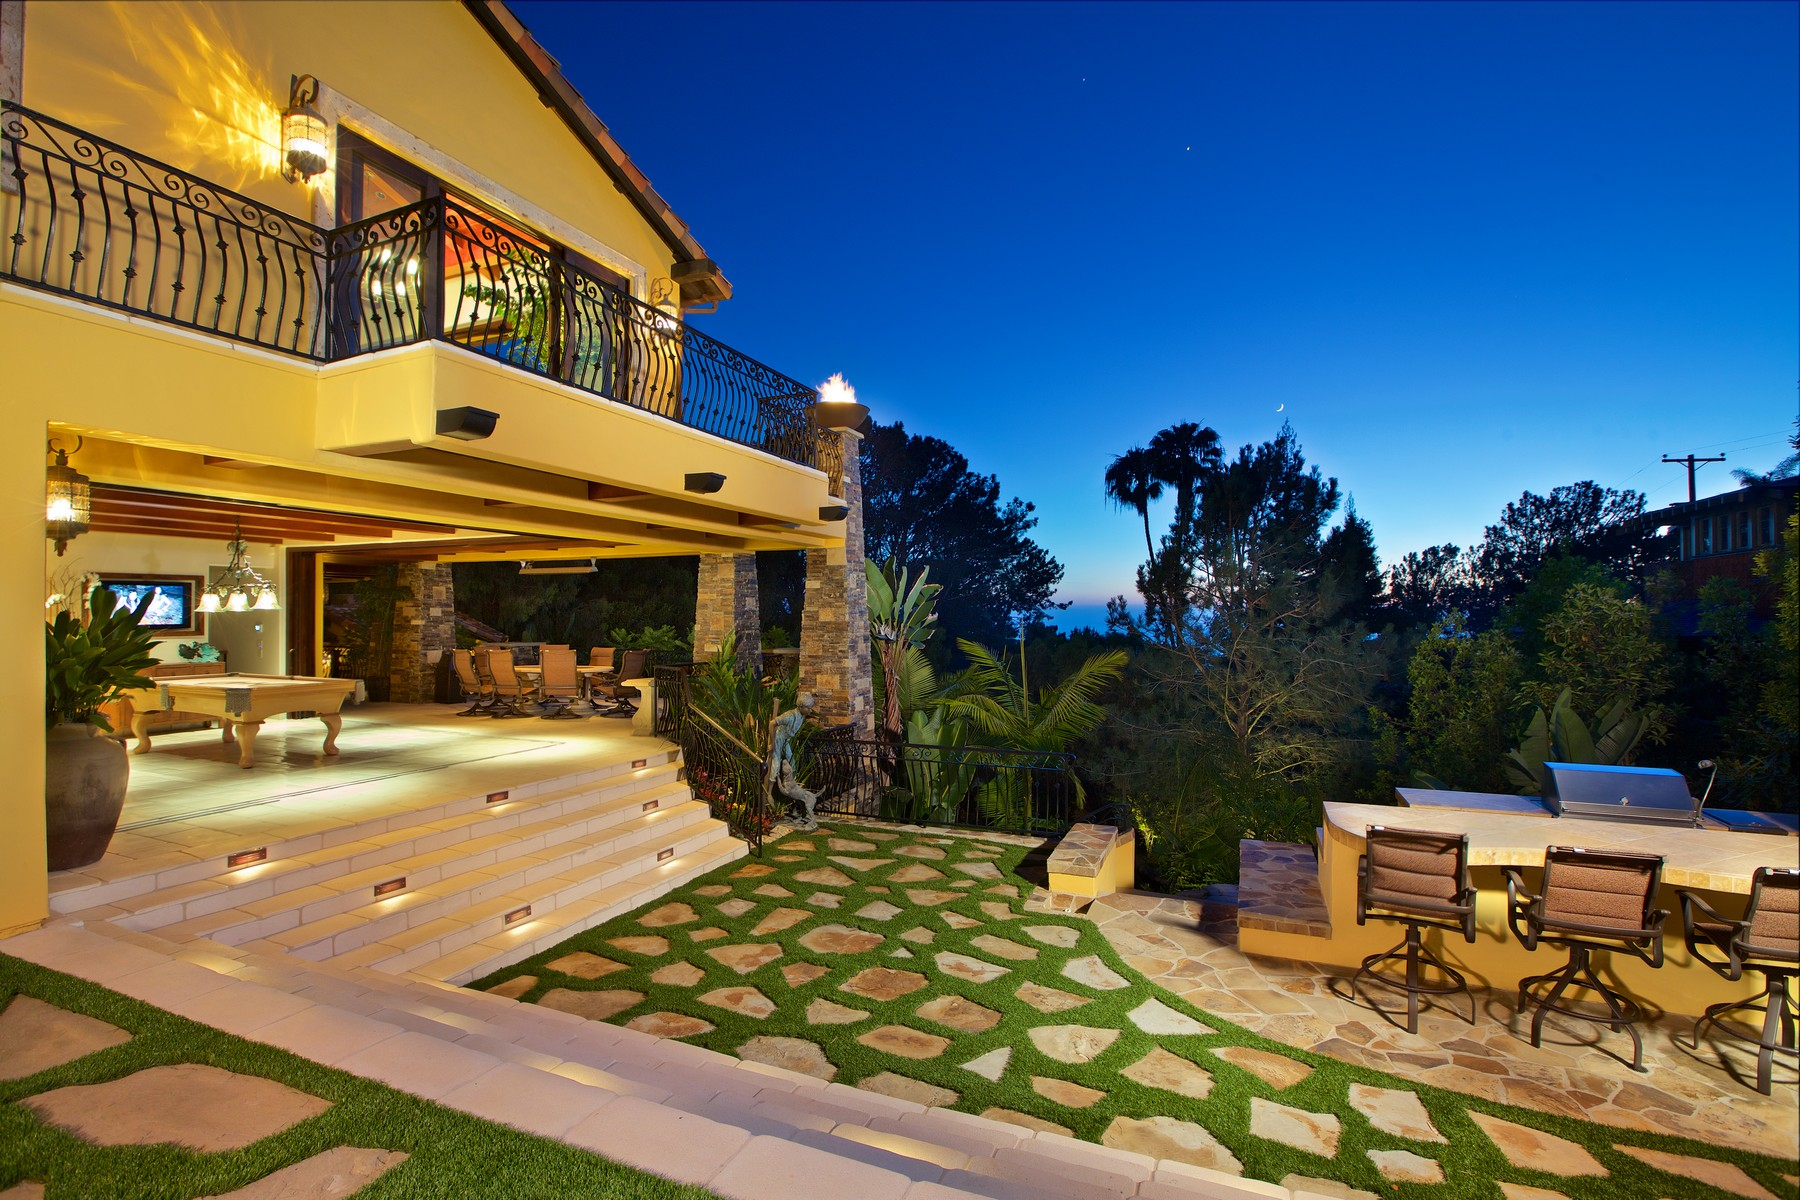 Single Family Home for Sale at 1440 Crest Road Del Mar, California 92014 United States